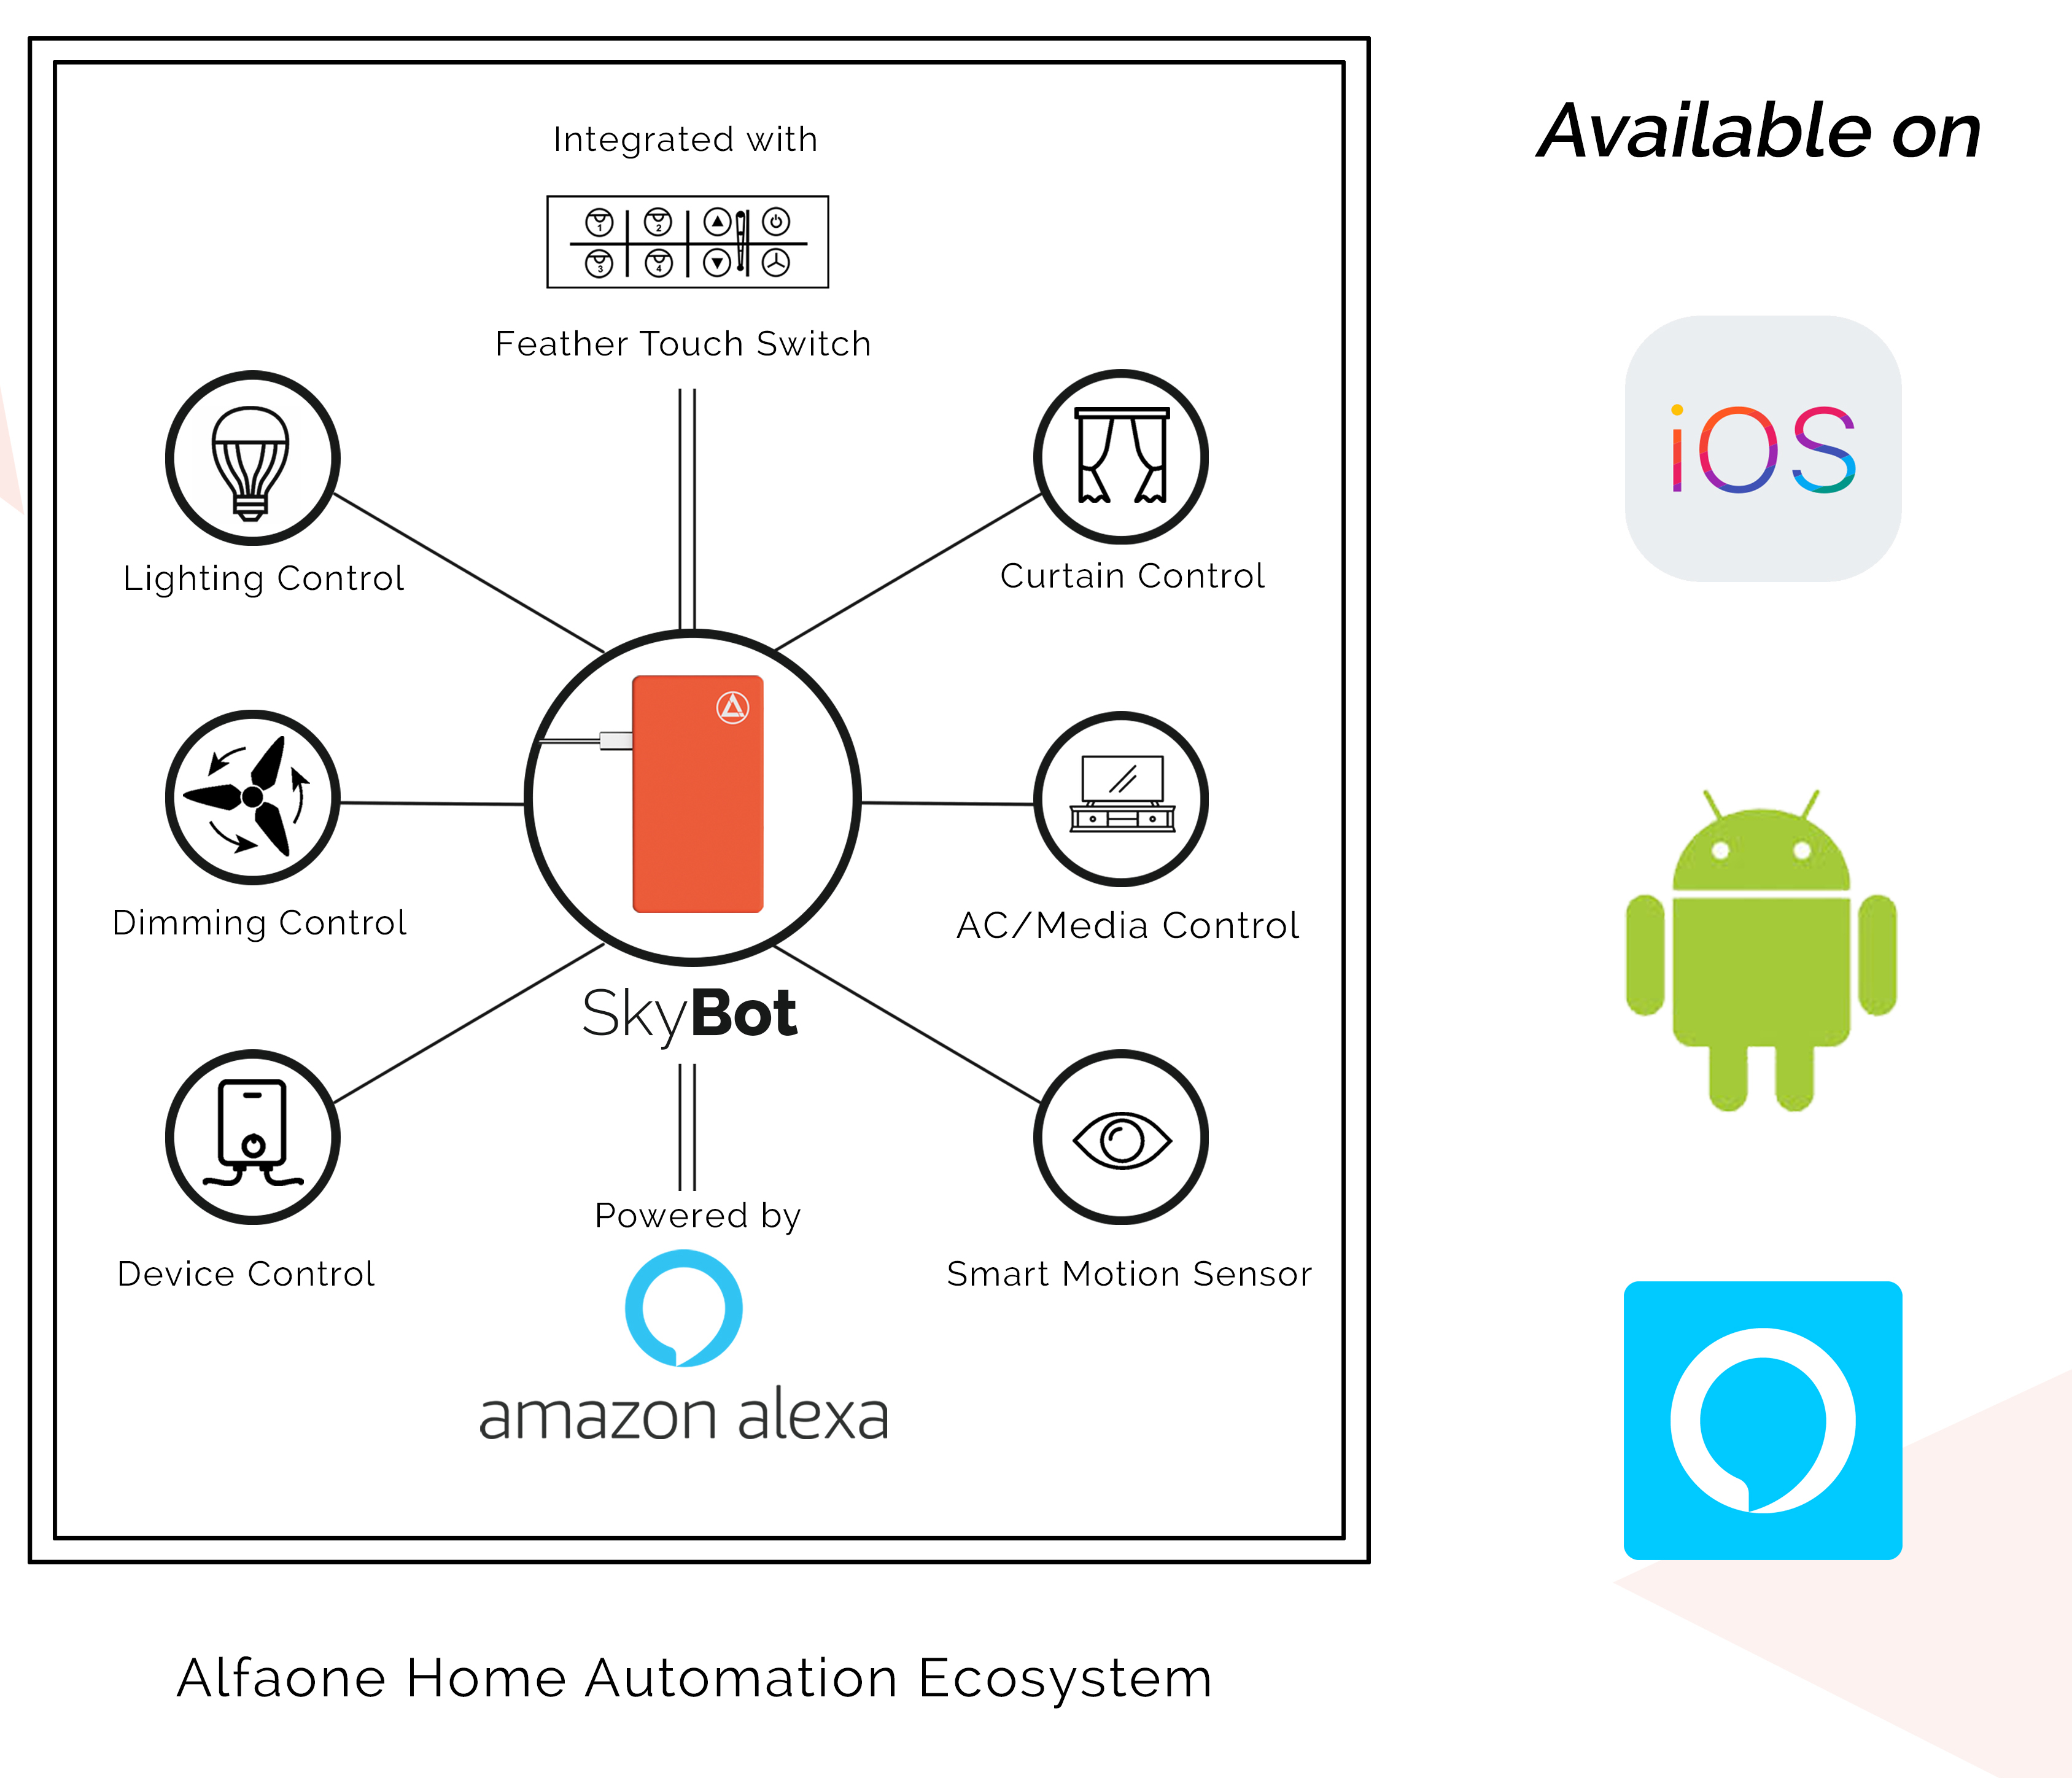 Home Automation EcoSystem